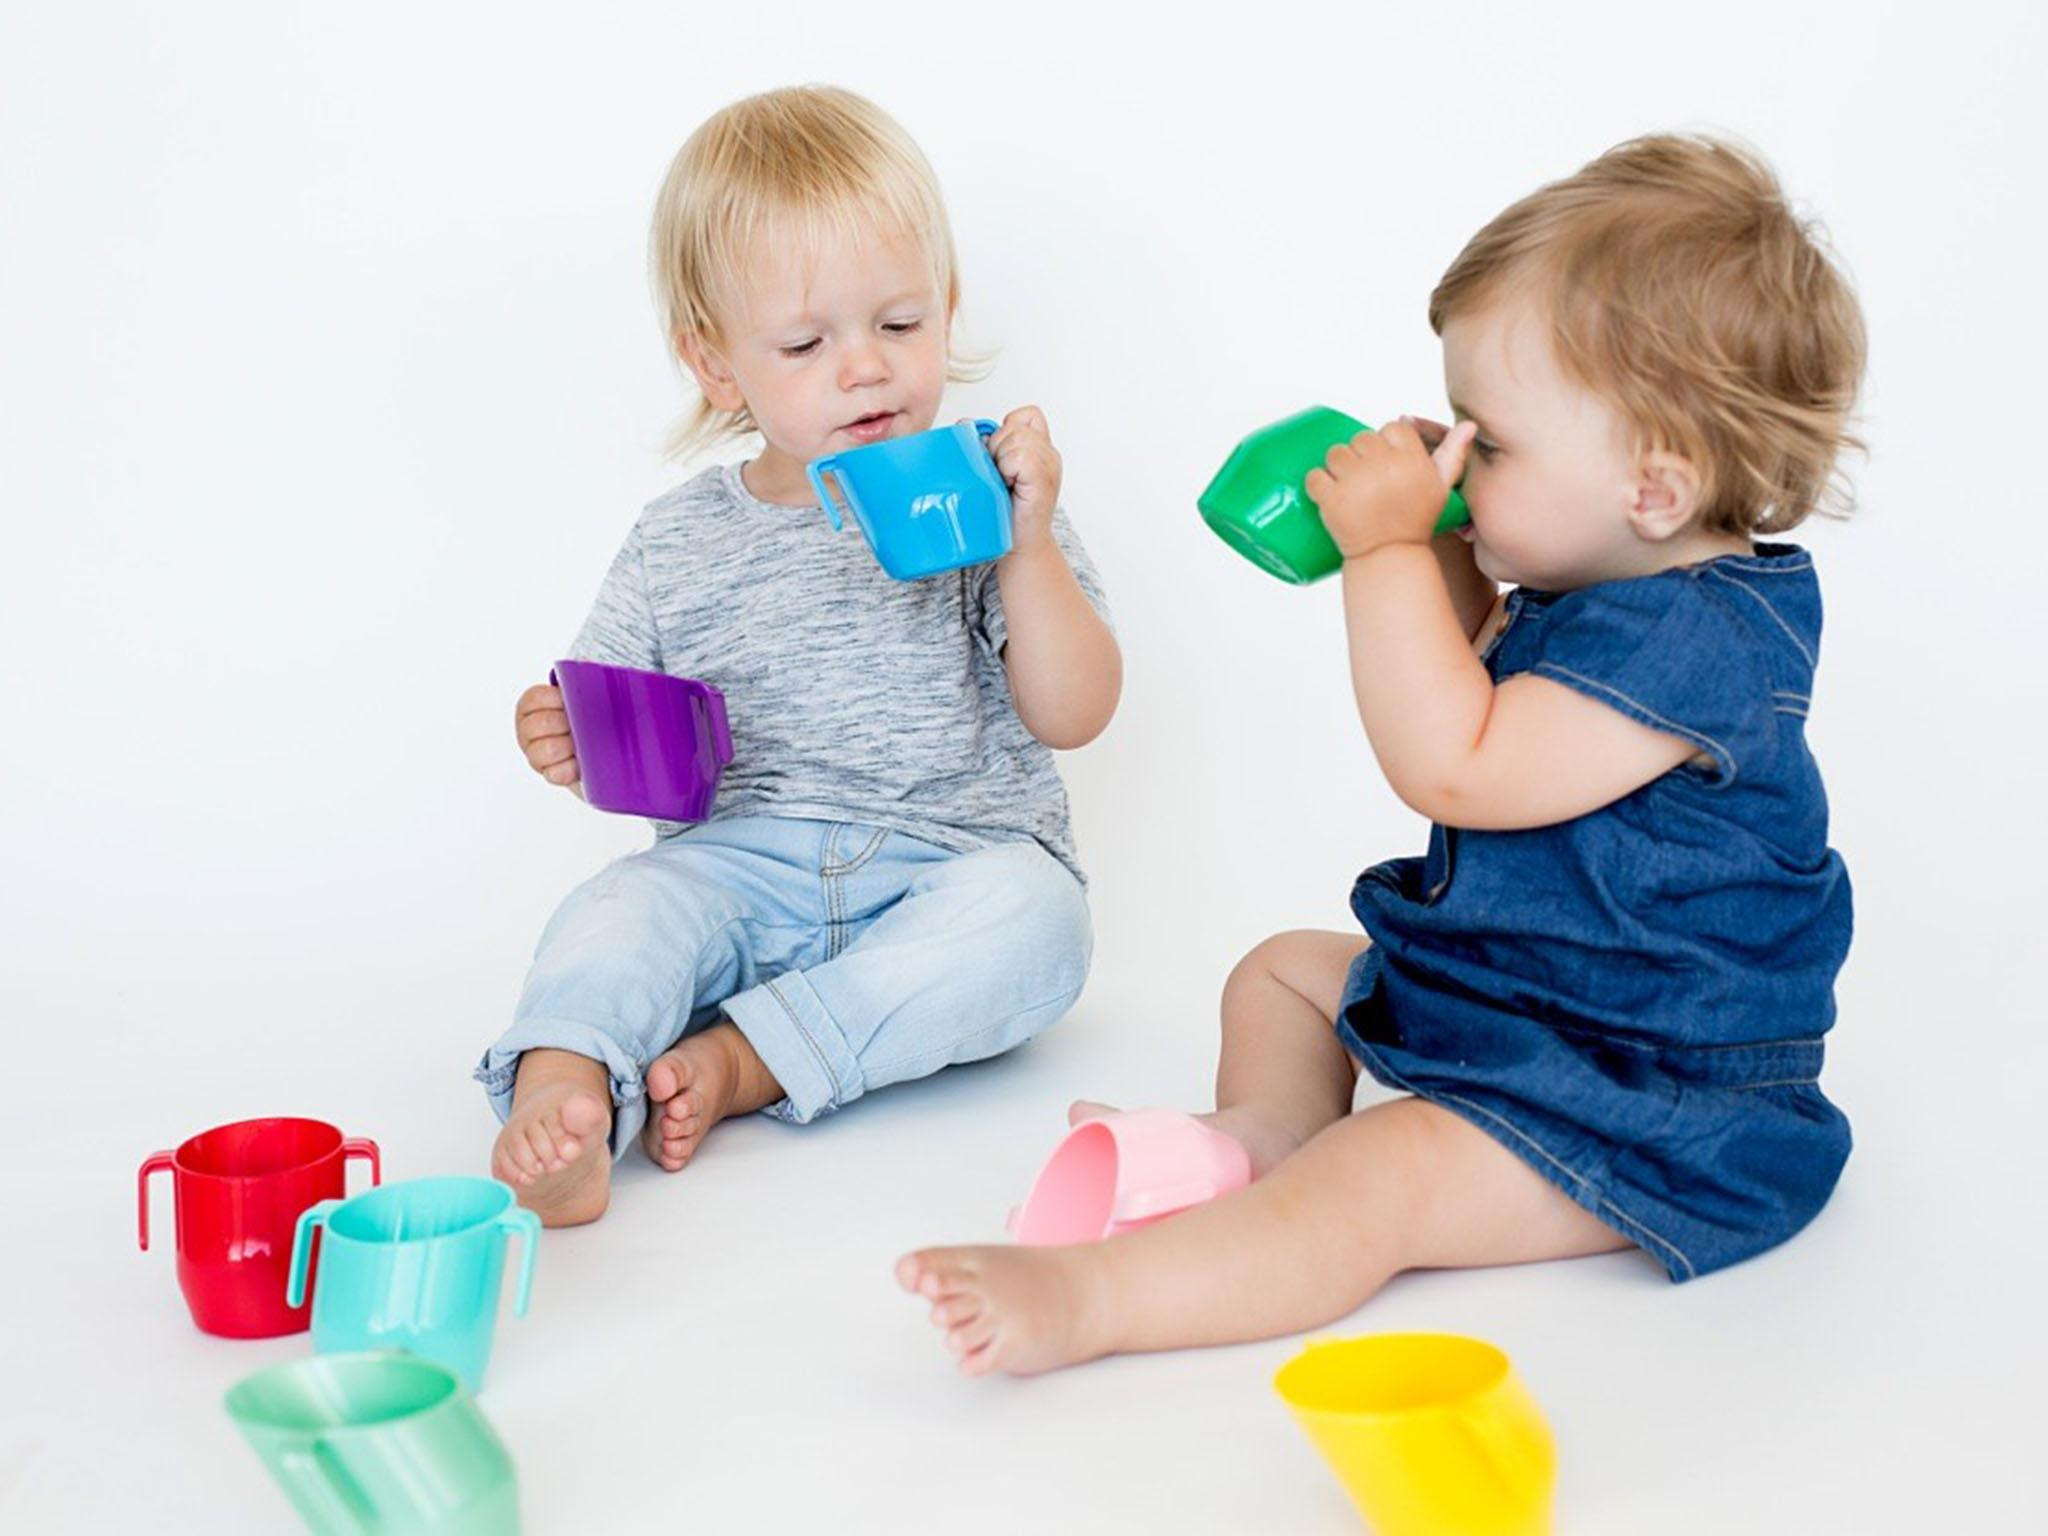 Children/'s Drinking Cup Double Handle Plastic Milk Cup Daily Houshold Accessory